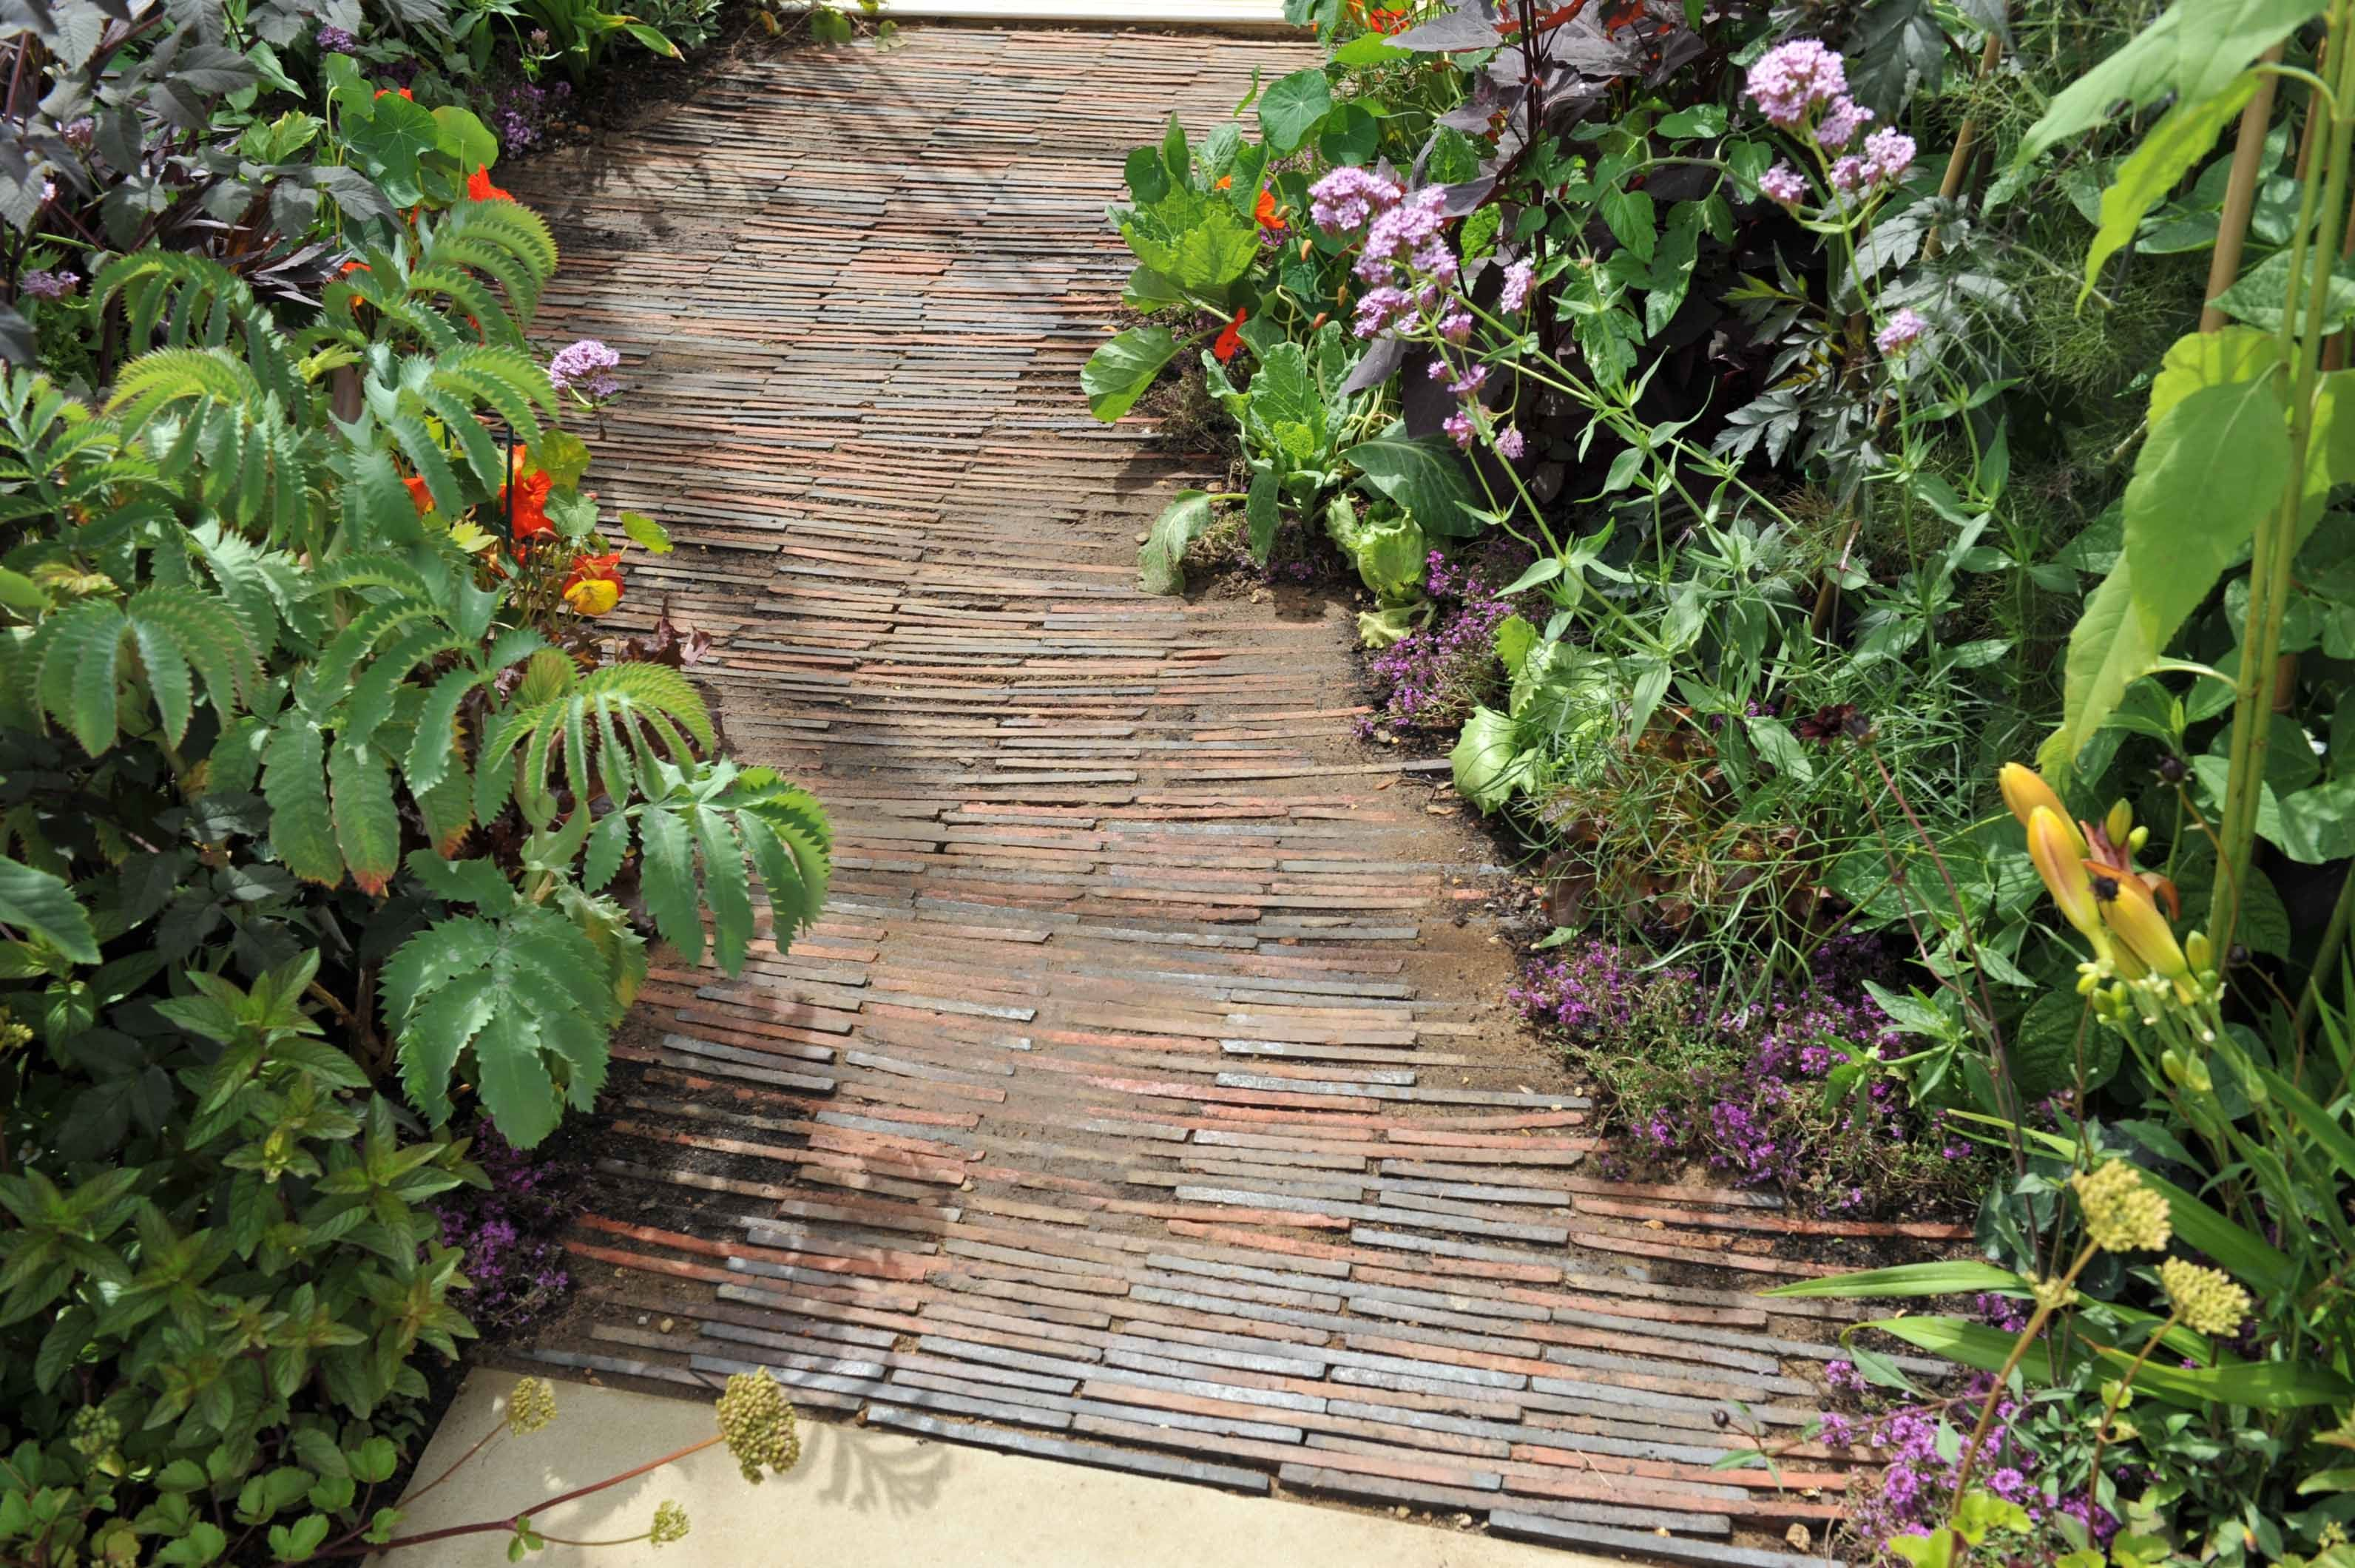 path is paved using old roof tiles